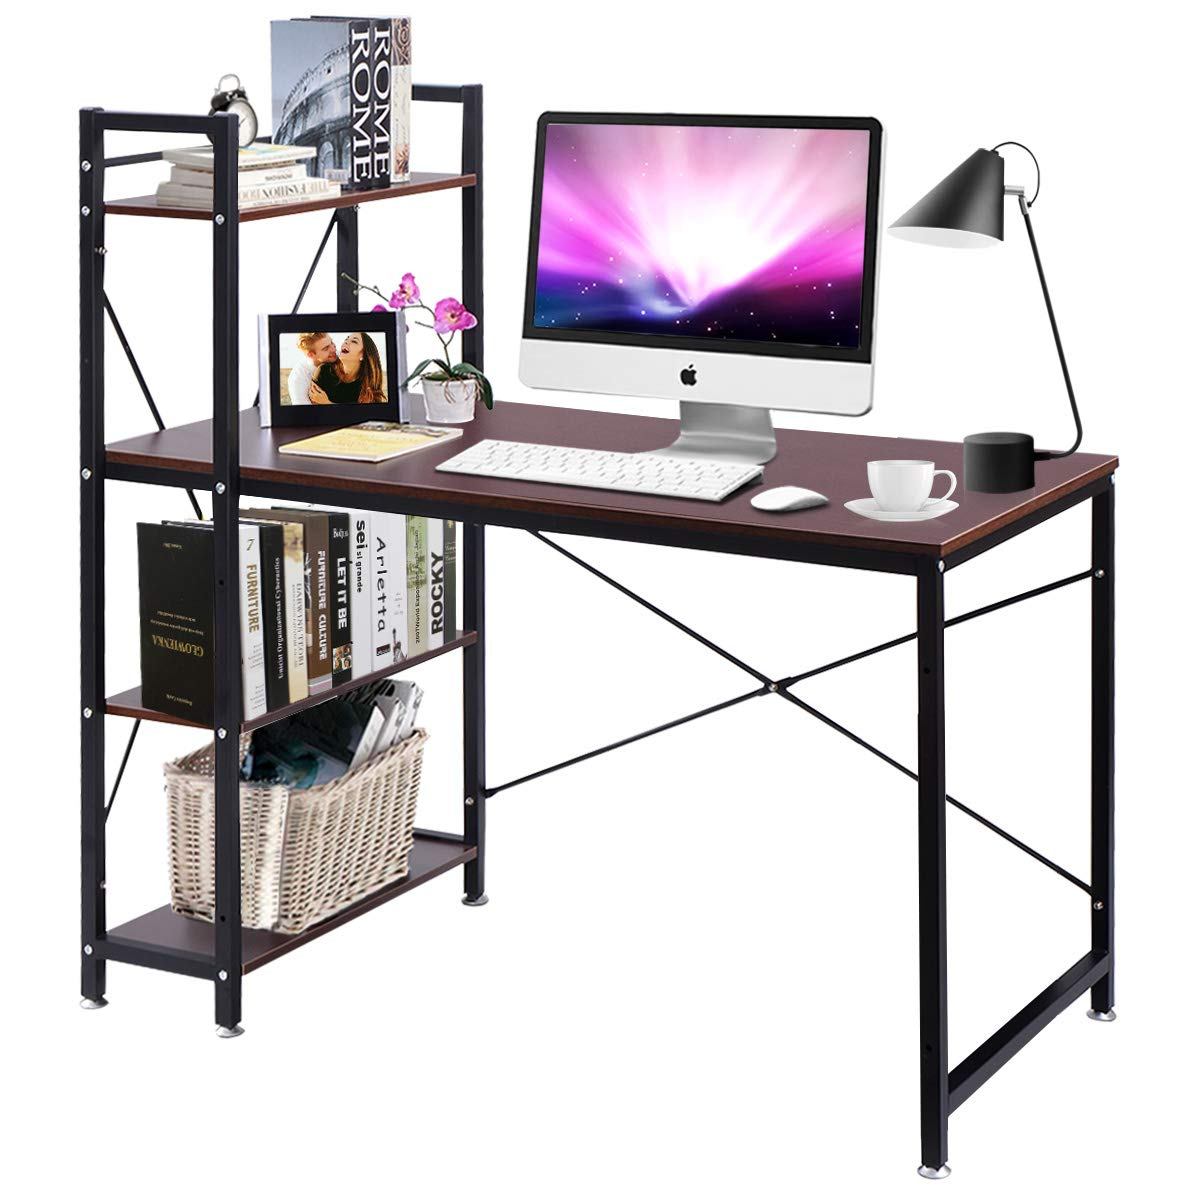 Tangkula 47.5'' Computer Desk, Modern Style Writing Study Table with 4 Tier Bookshelves, Home Office Desk, Compact Gaming Desk, Multipurpose PC Workstation(Brown) by Tangkula